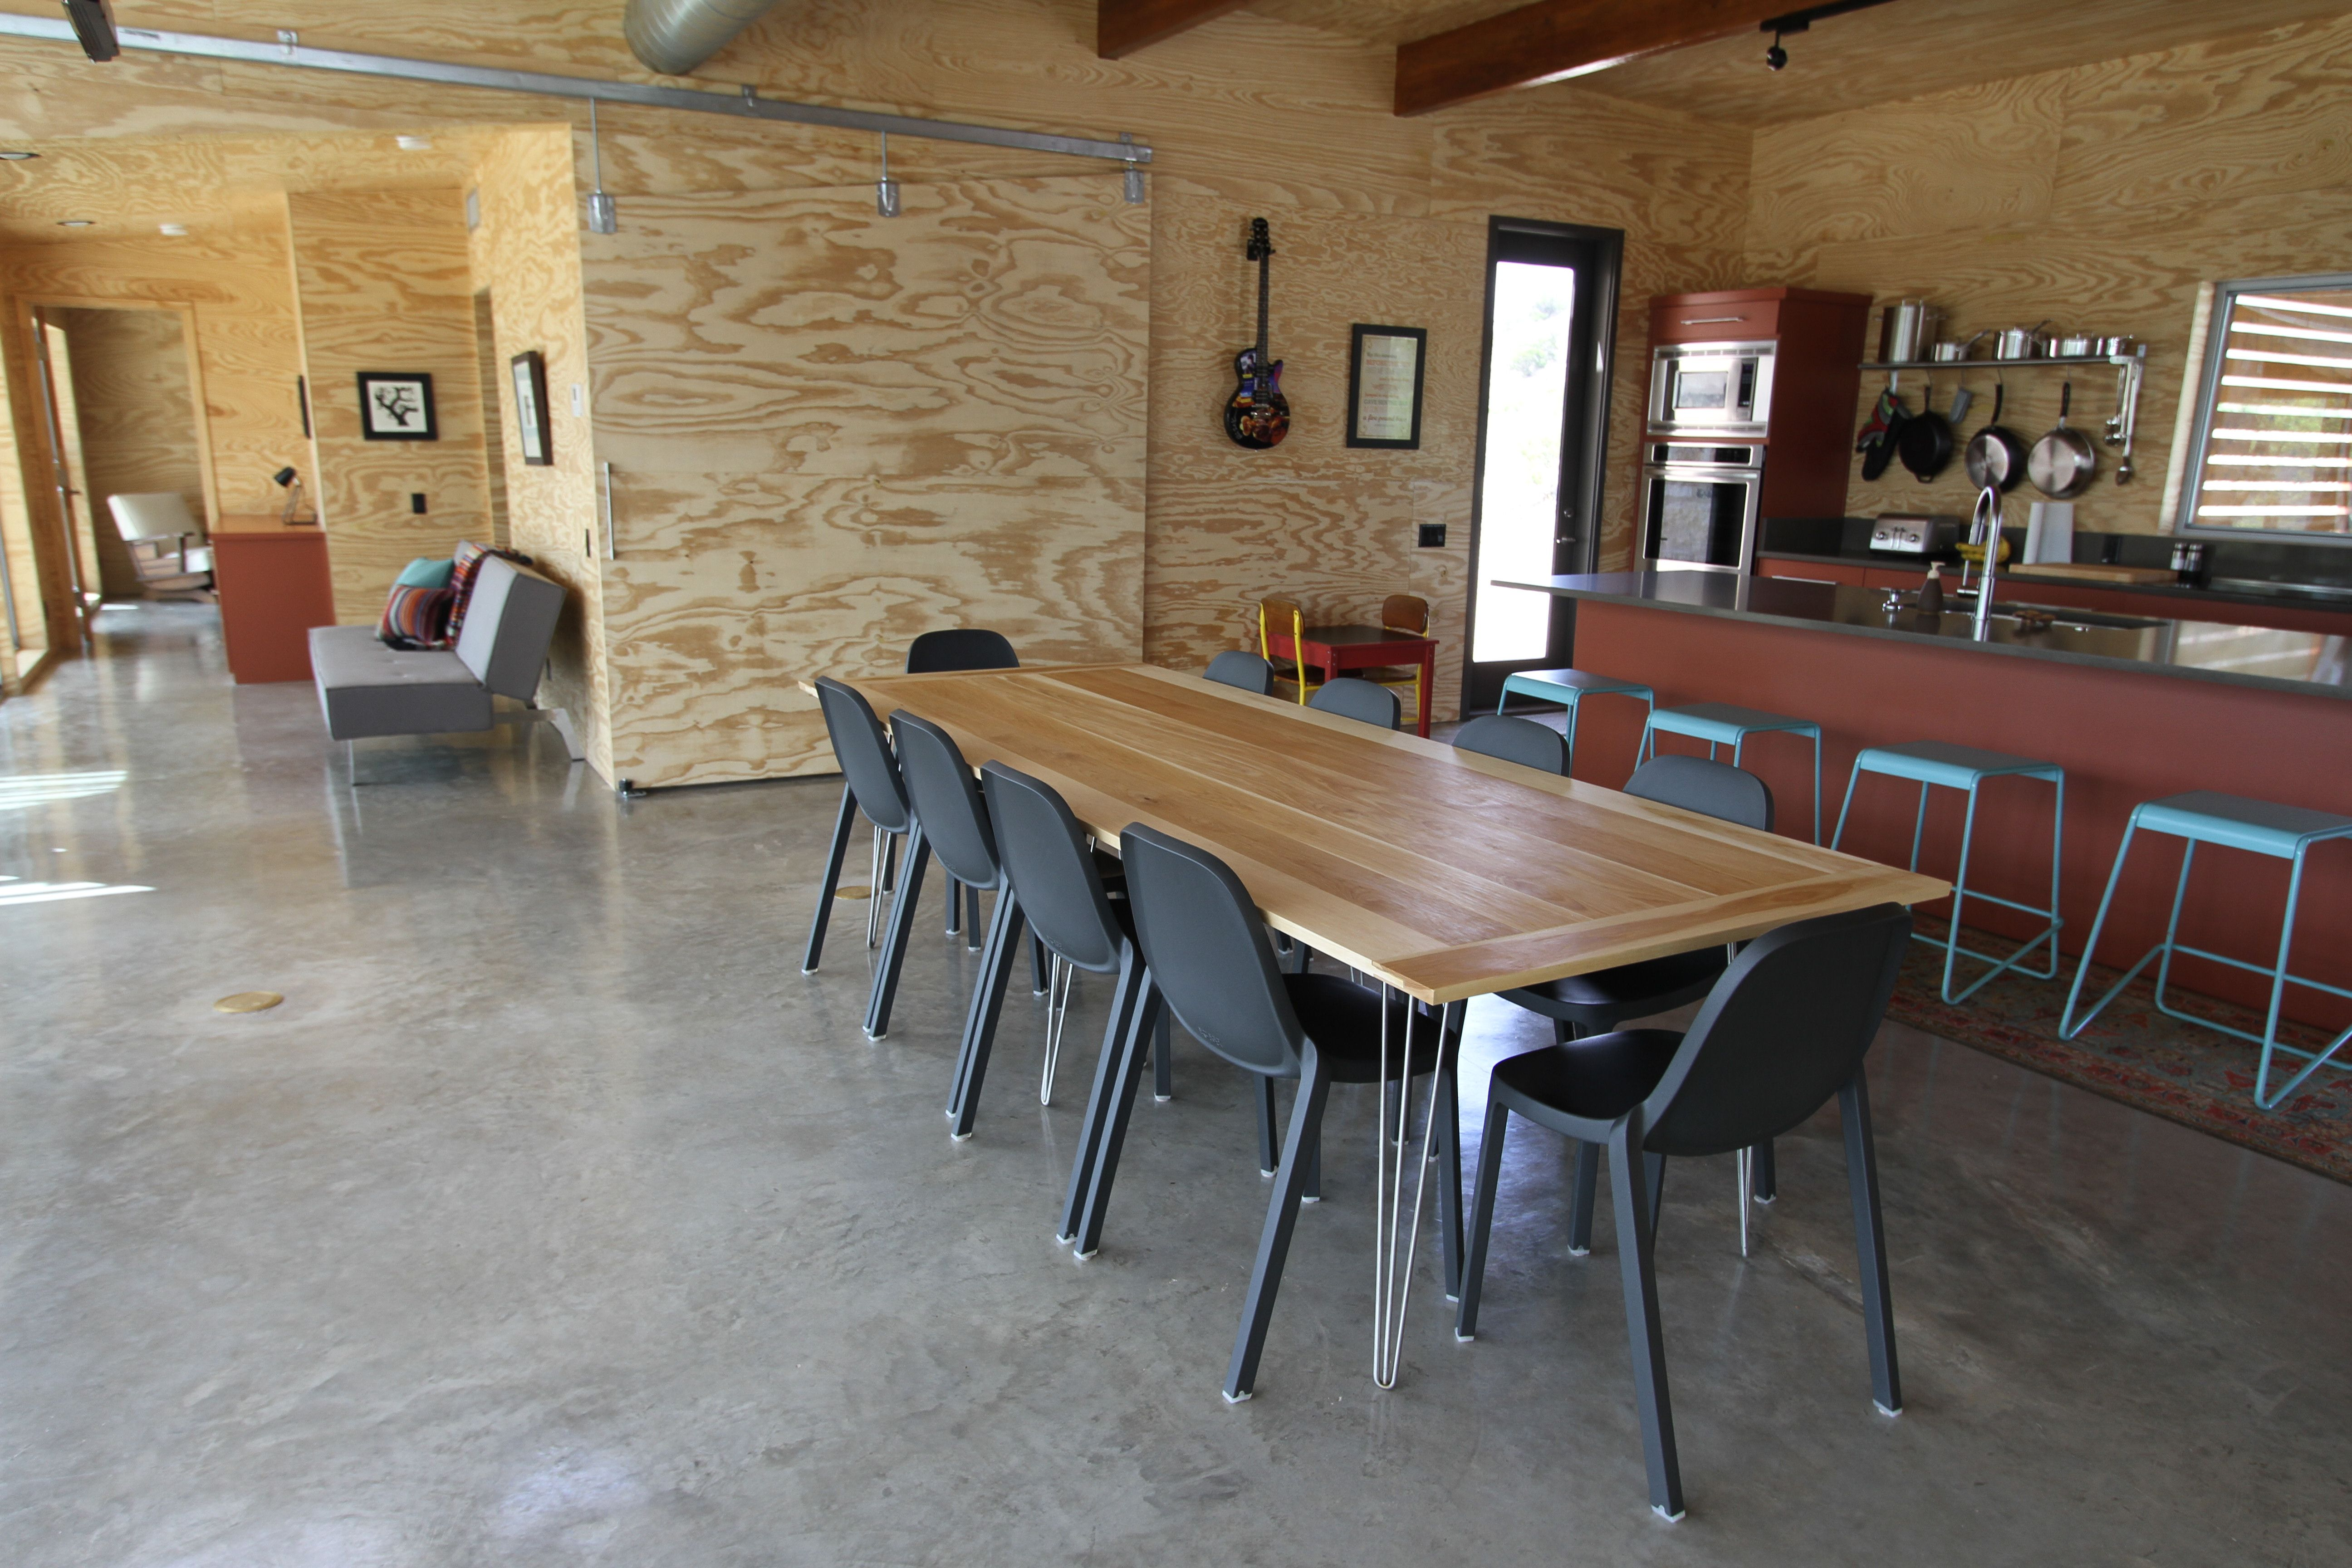 Dining Room Rustic Wooden Dining Table With Stainless